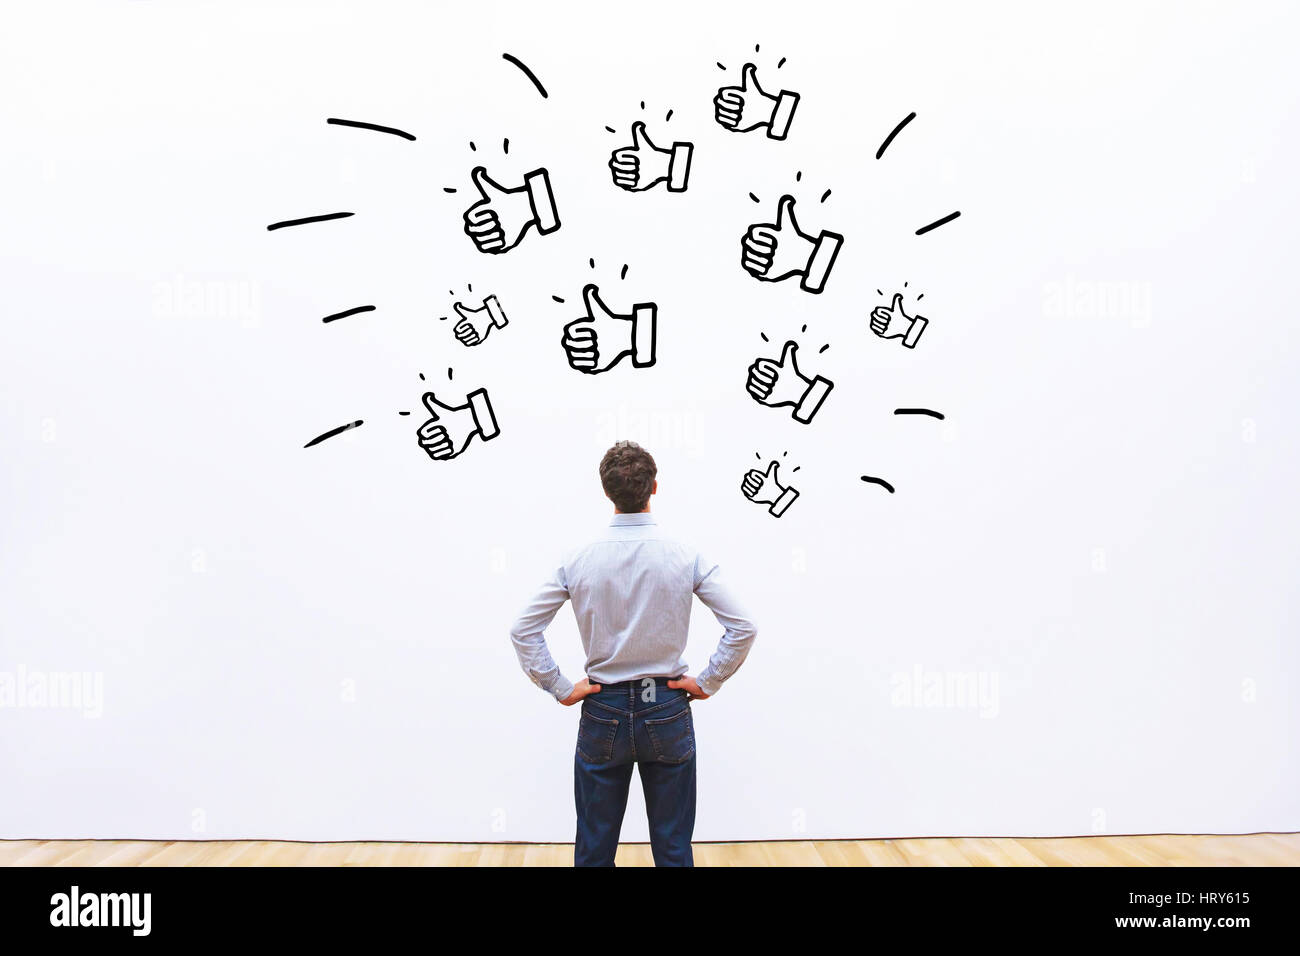 likes on social networks, positive customer feedback for business company, popularity concept - Stock Image